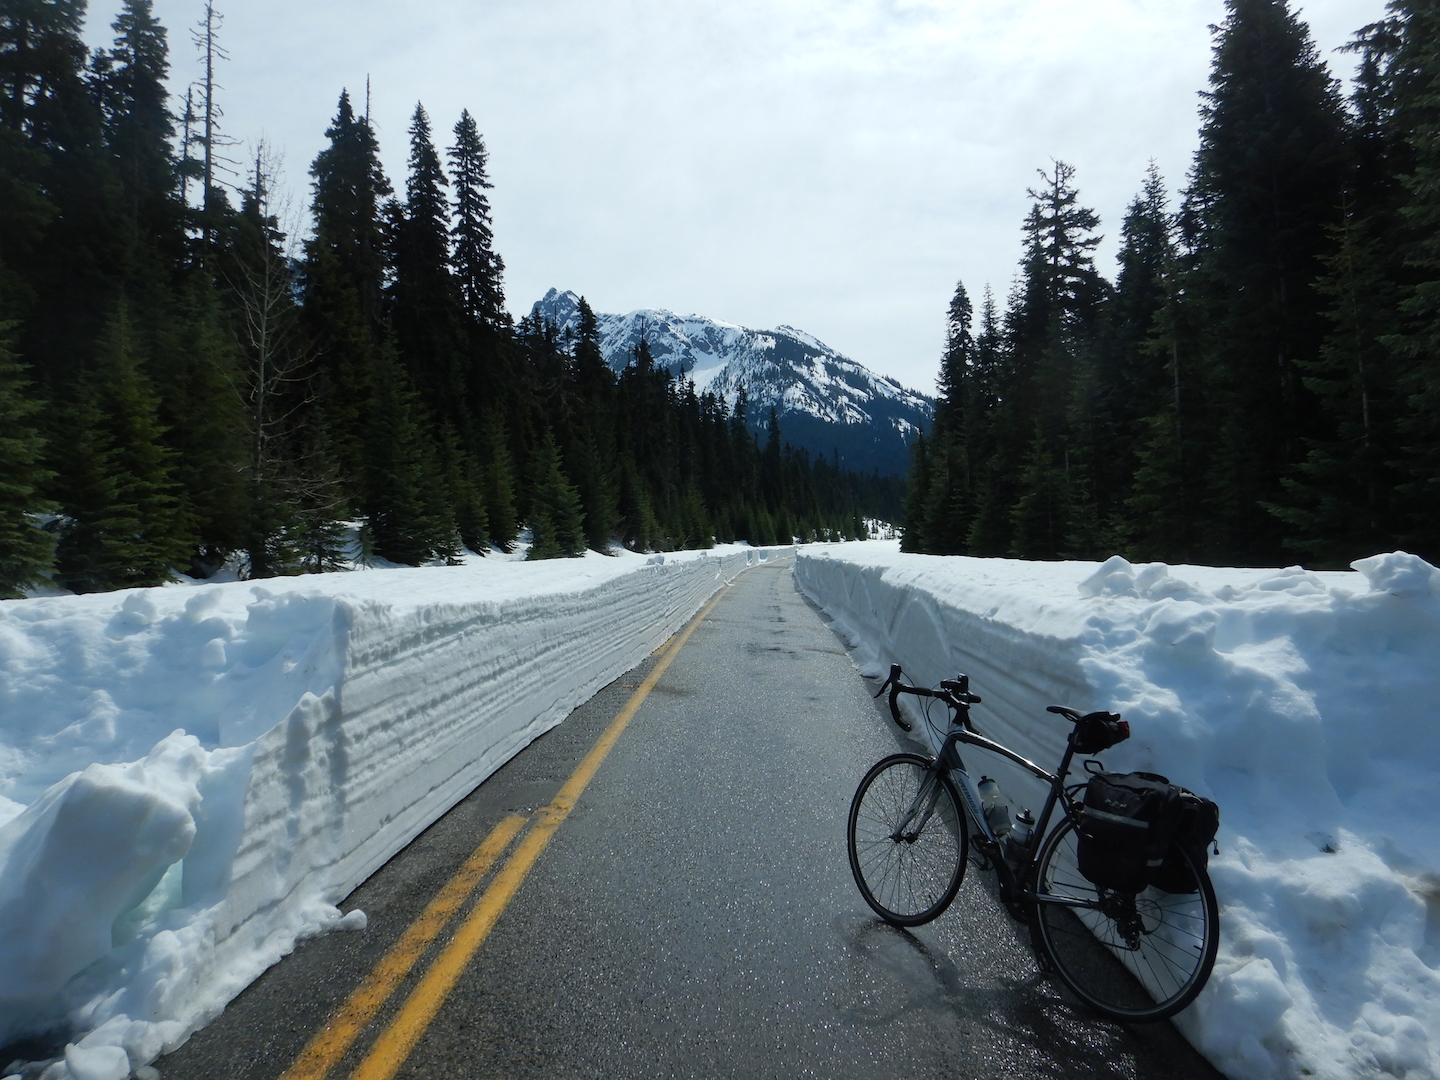 bicycle leaning against snow bank with one lane of plowed highway